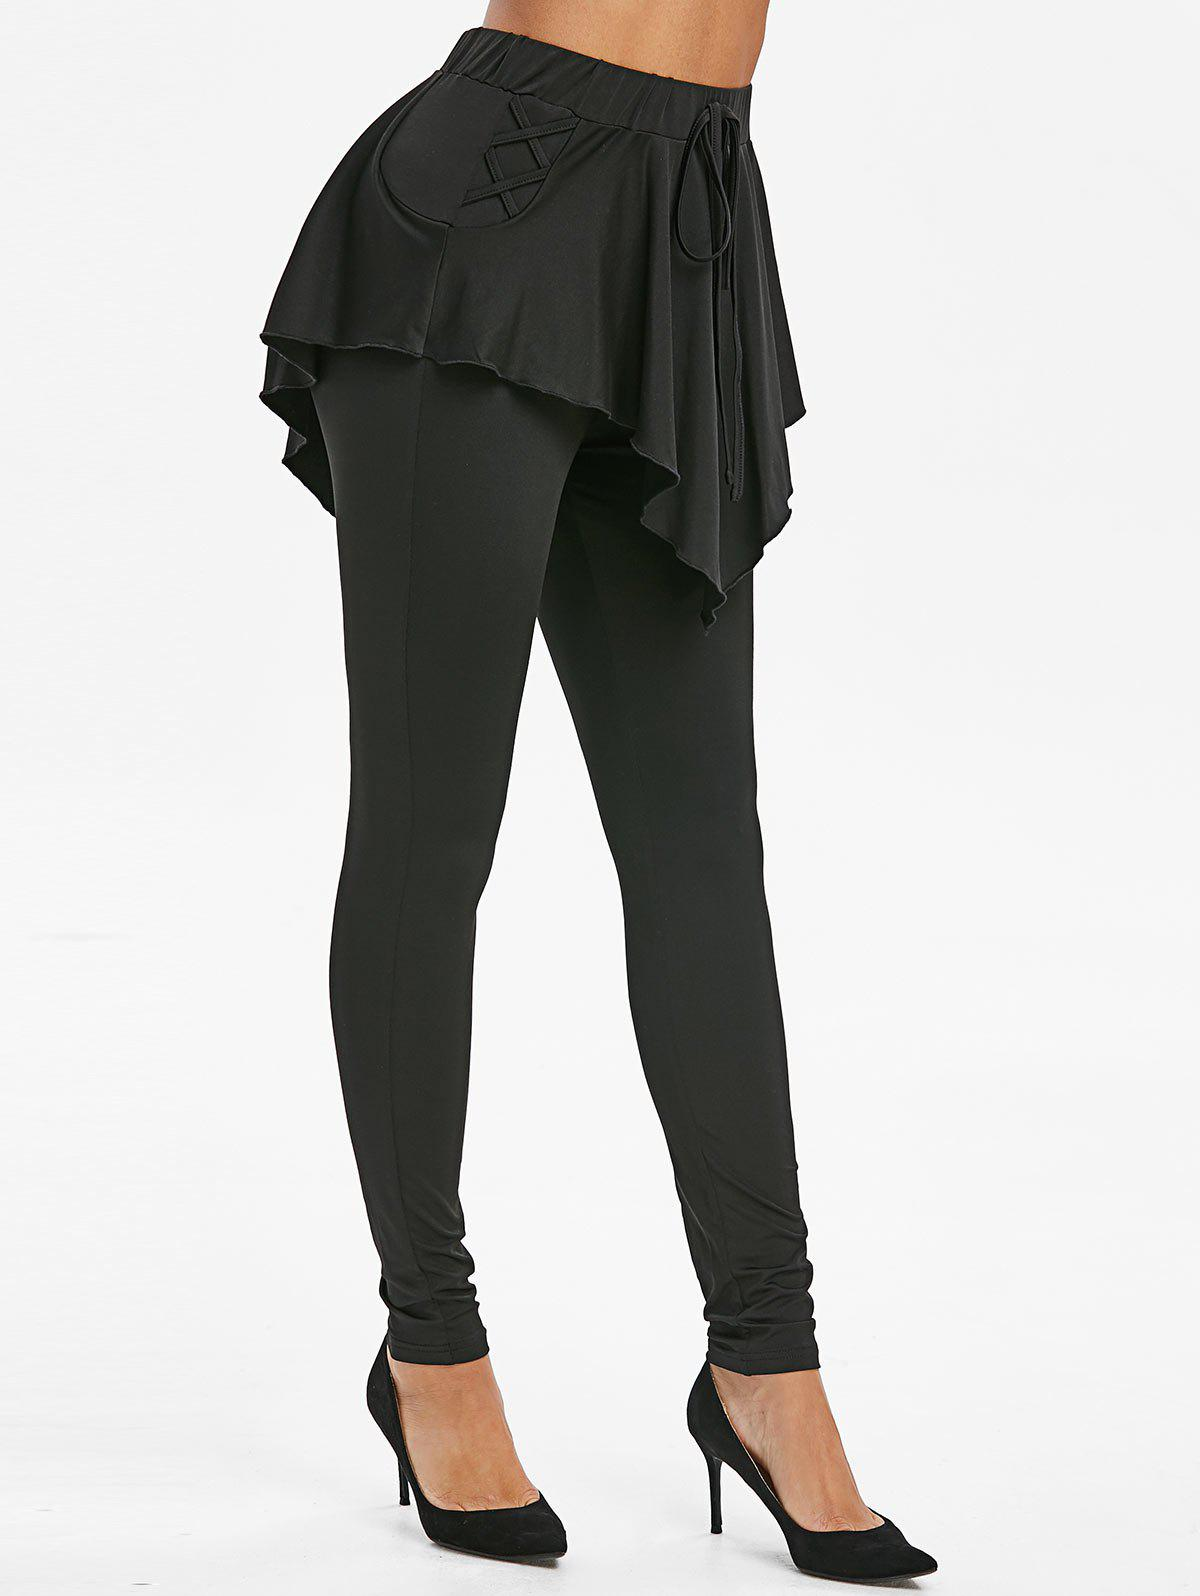 Cheap Criss Cross Overlay Leggings